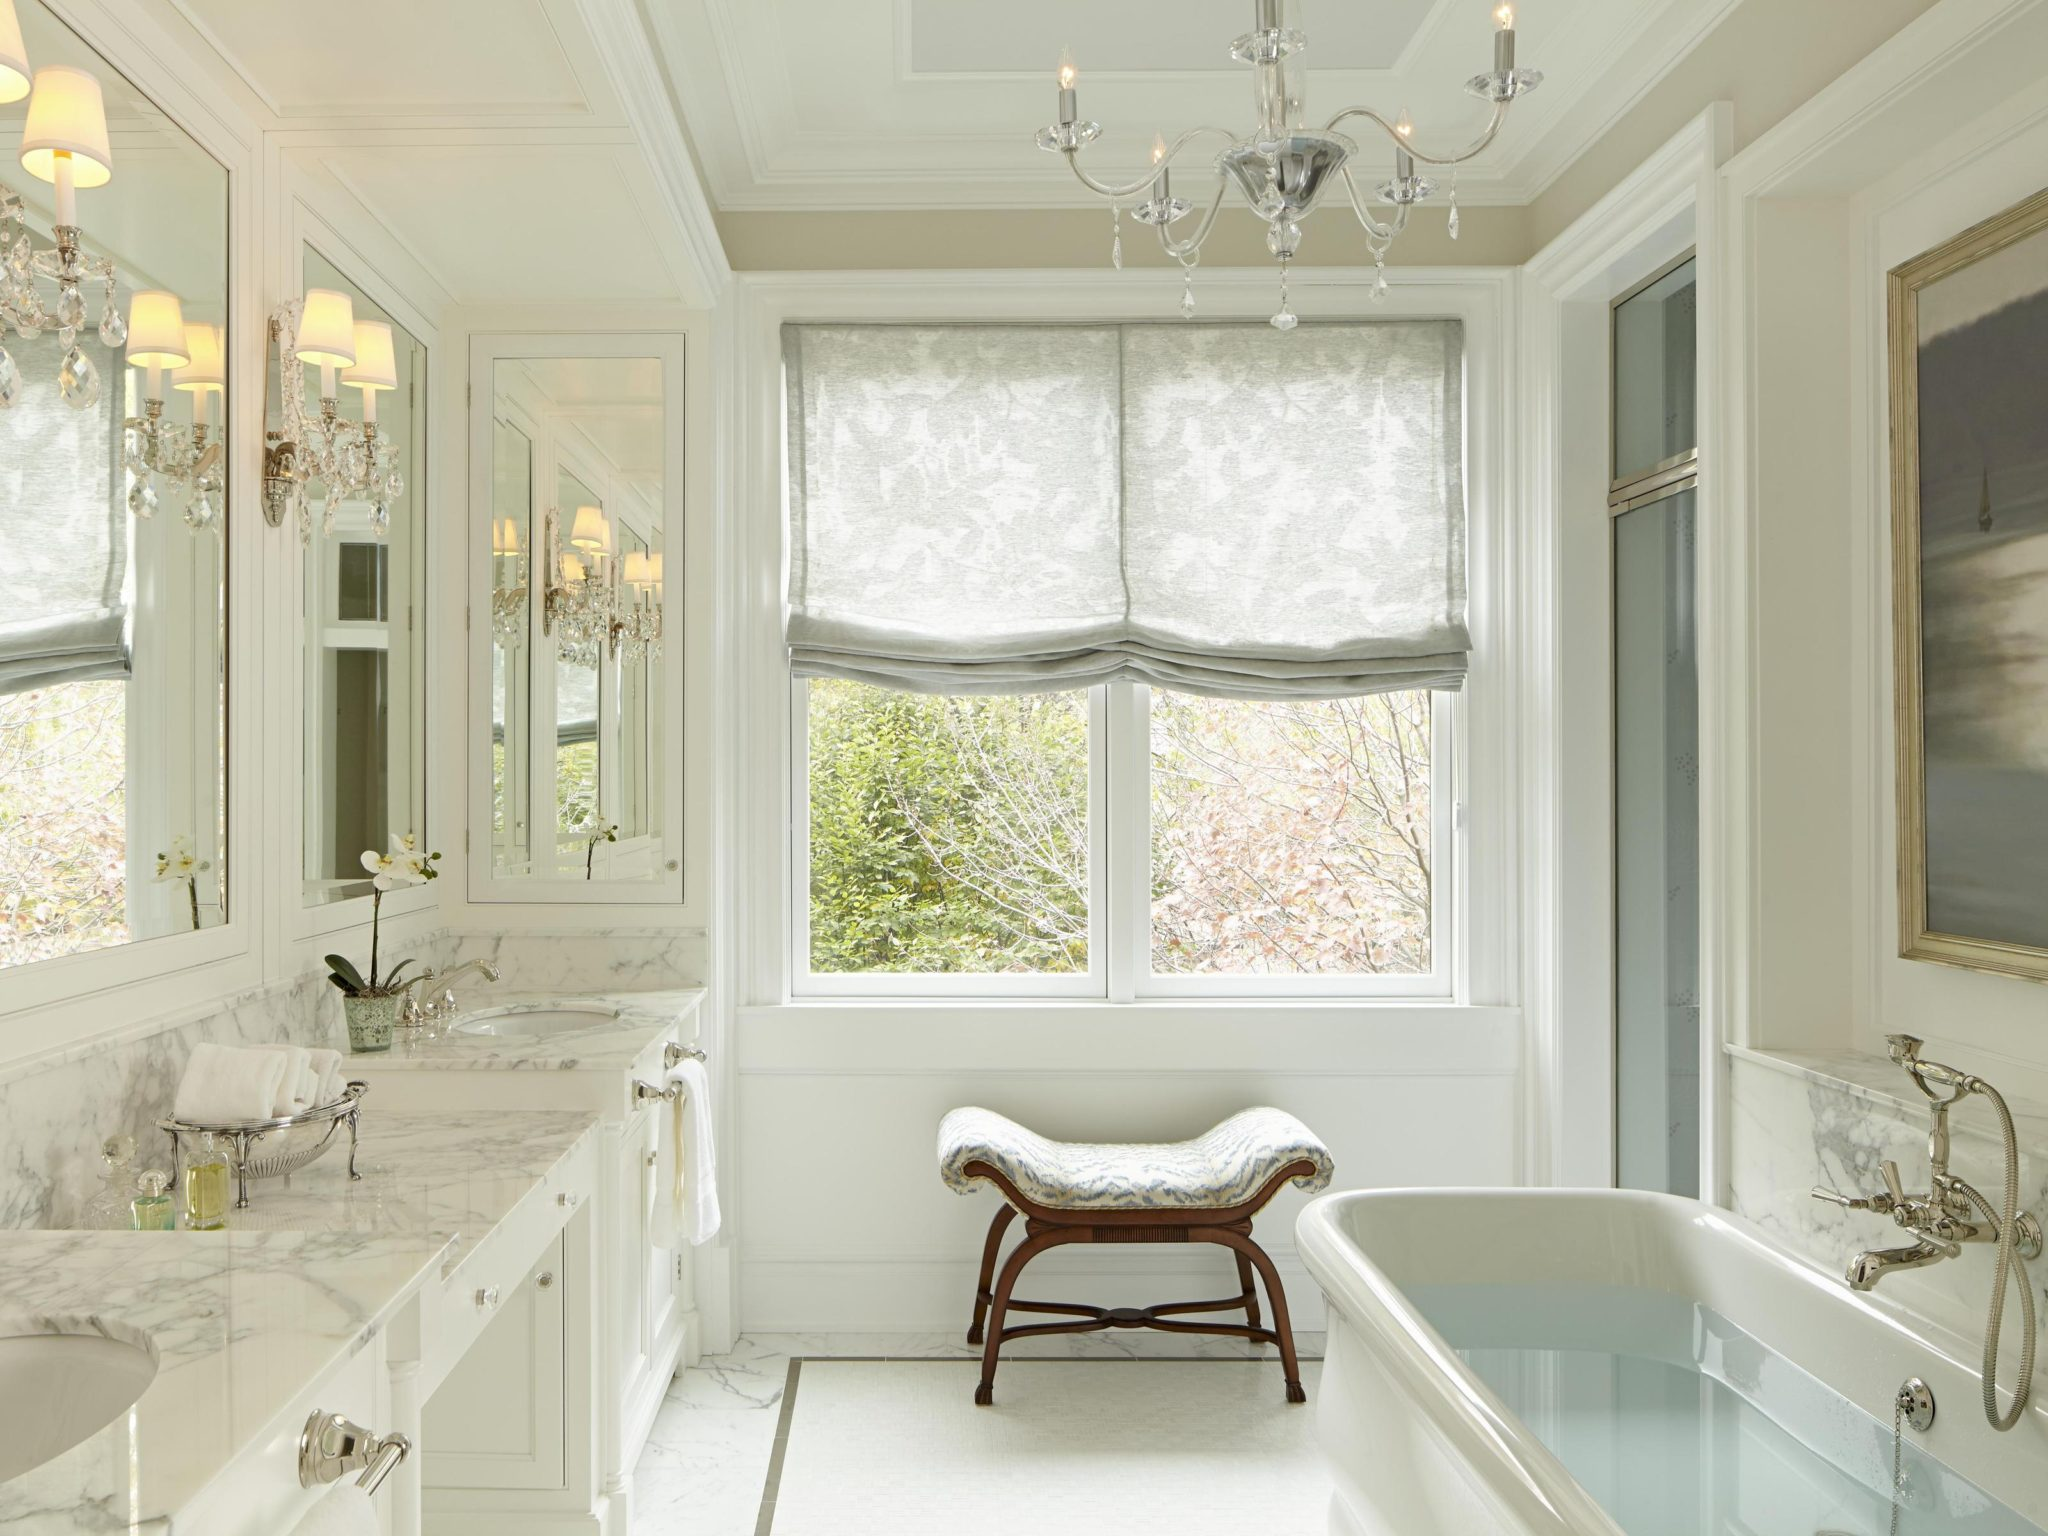 Traditional marble bath with soaking tub. Architecture by bba ARCHITECTS